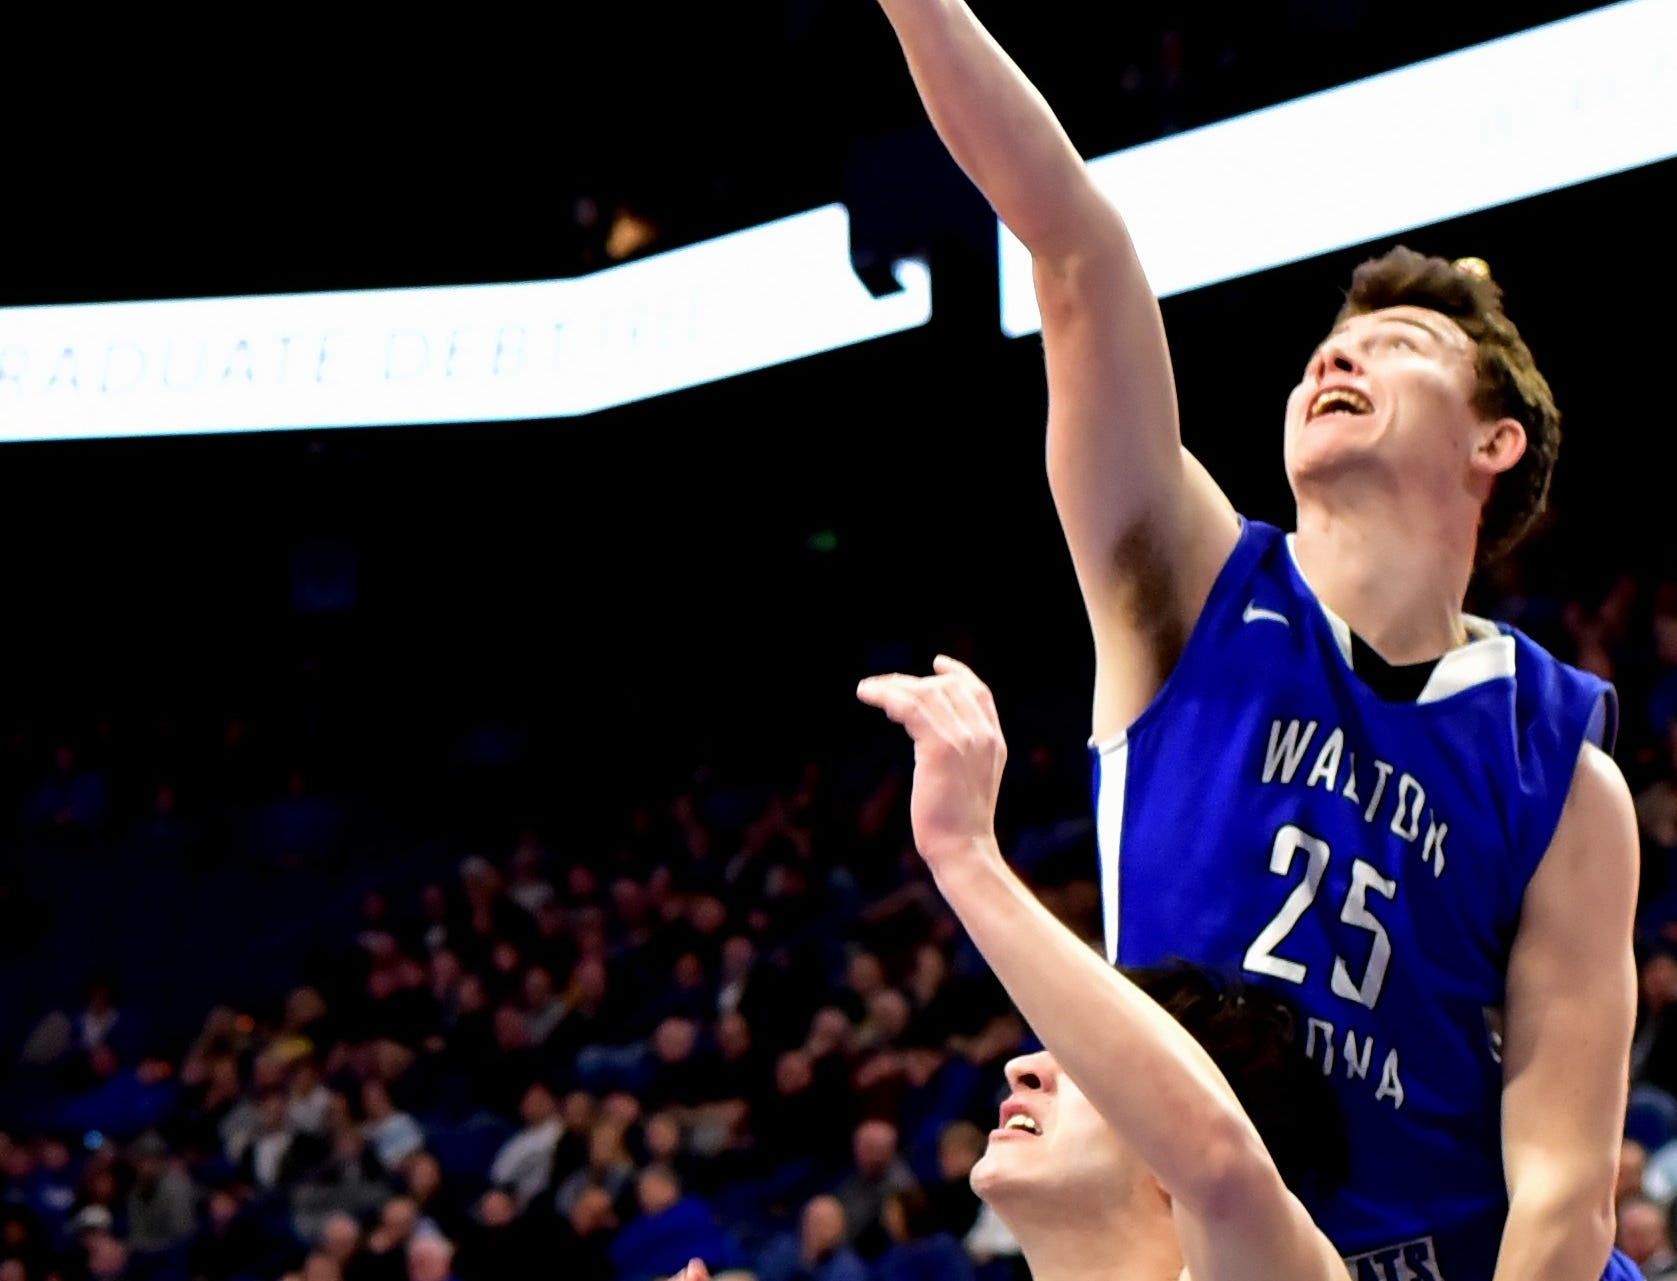 Walton Verona's Kameron Pardee (25) battles for a rebound at the KHSAA Sweet 16 Tournament at Rupp Arena in Lexington, KY, March 6, 2019